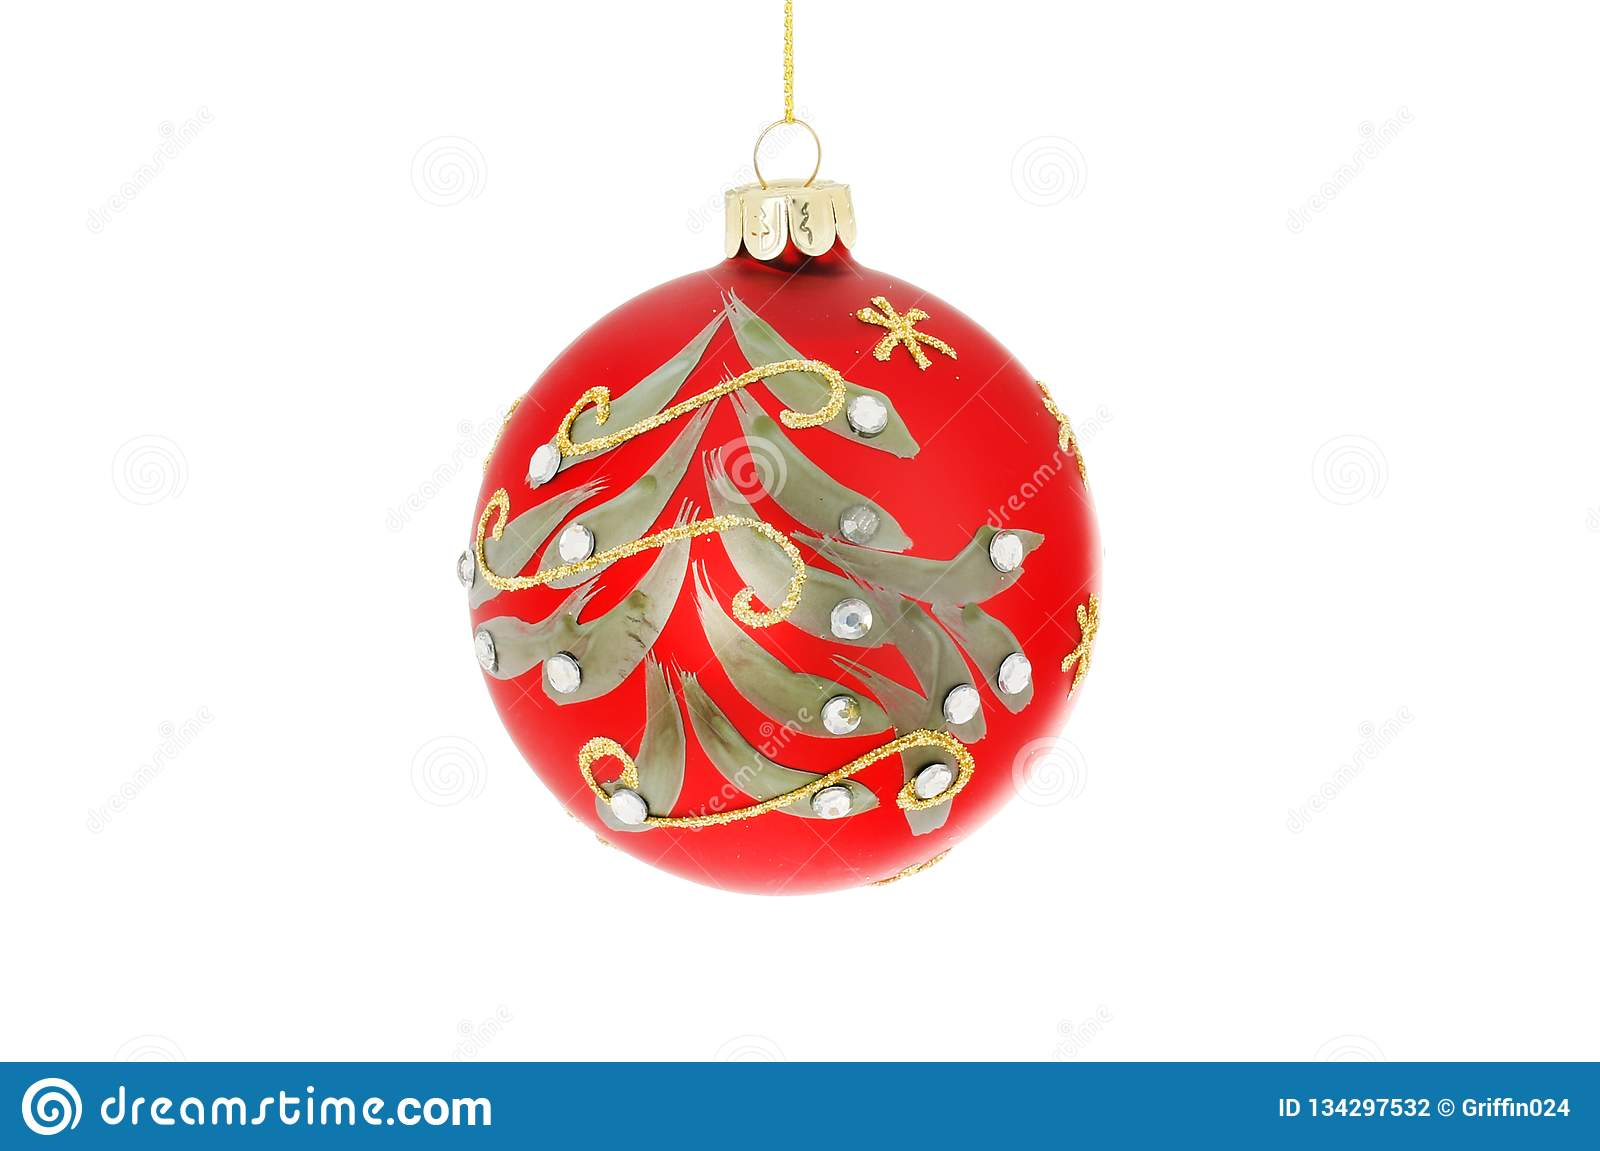 85ecd50665d6 Red and gold glitter Christmas bauble with a Christmas tree motif, studded  with glass jewels, isolated against white